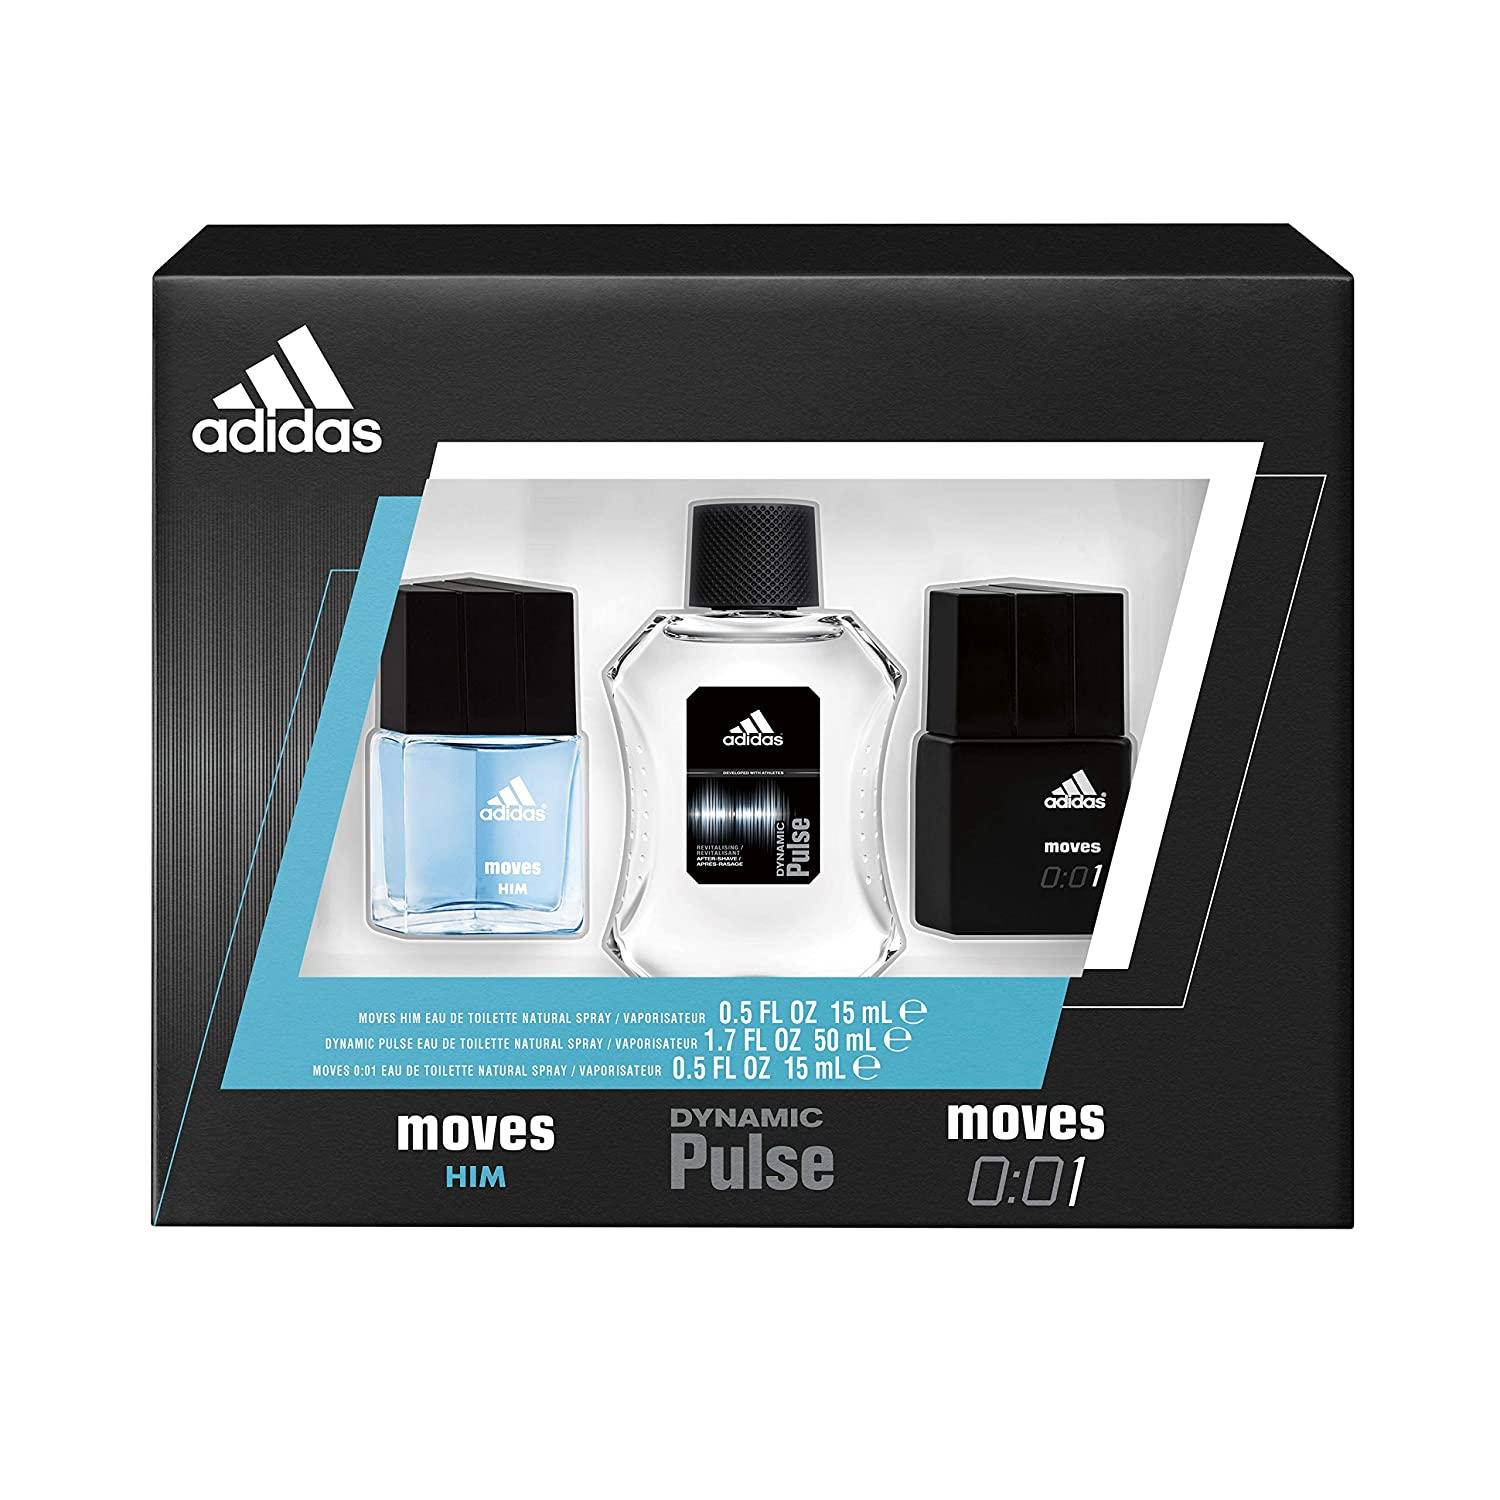 Adidas Fragrance 3 Piece Eau De Toilette Gift Set With 0.5-Ounce Moves, 0.5-Ounce Moves 001, And 1.7-Ounce Dynamic Pulse